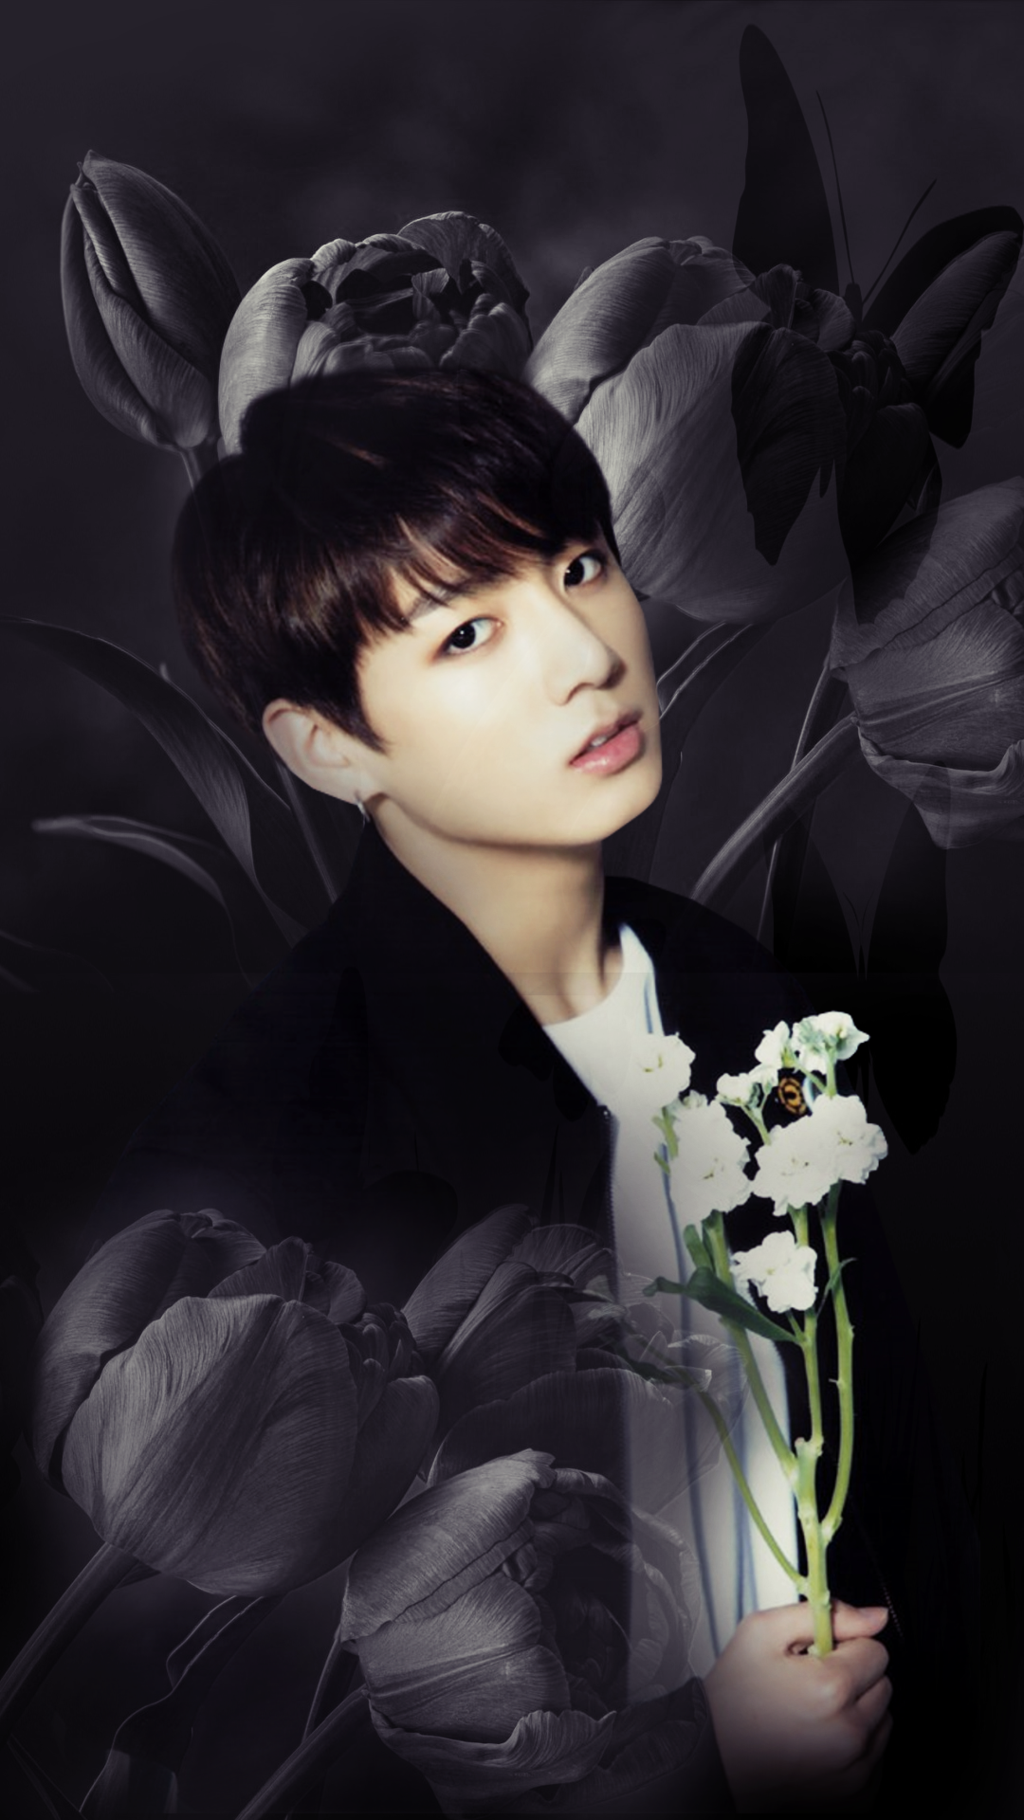 21730 bts jungkook wallpaper   the3js Photo 41194915 1024x1820